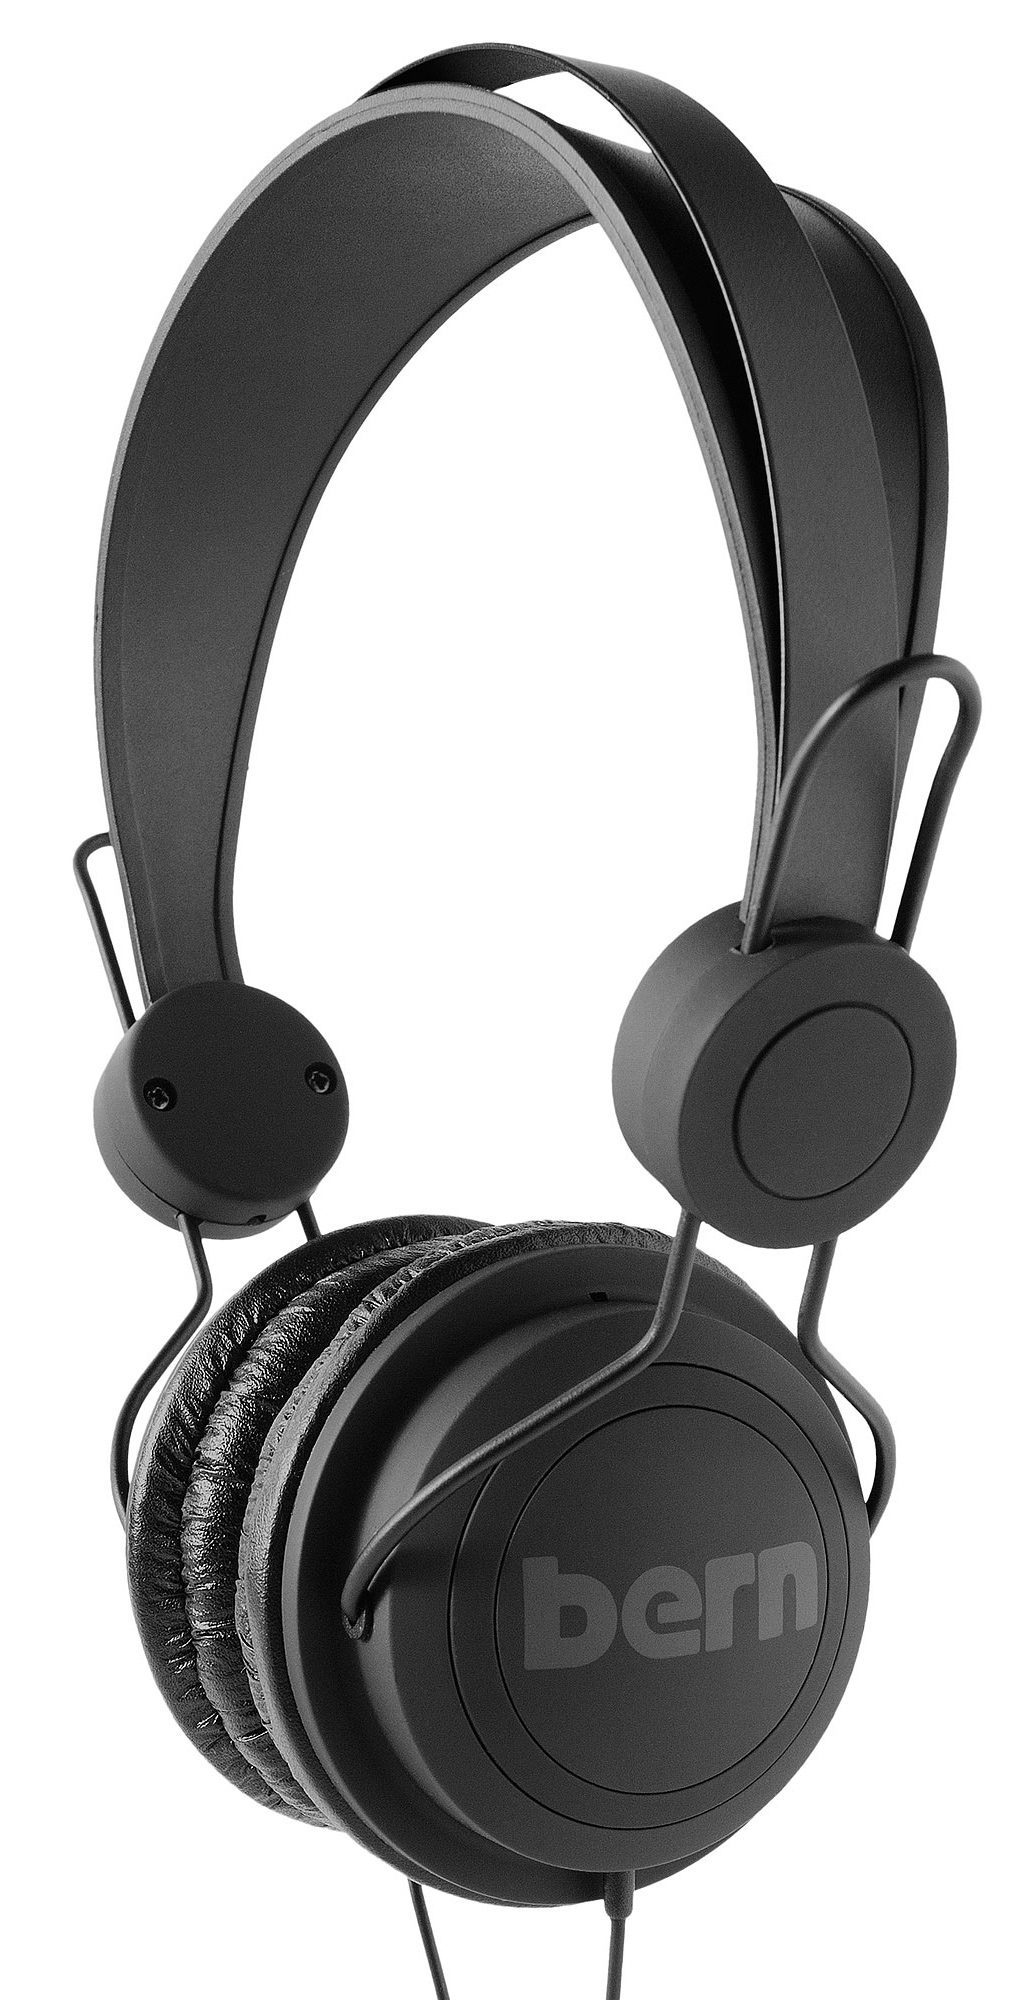 Entertainment Bern Retro Headphones Black - $38.95